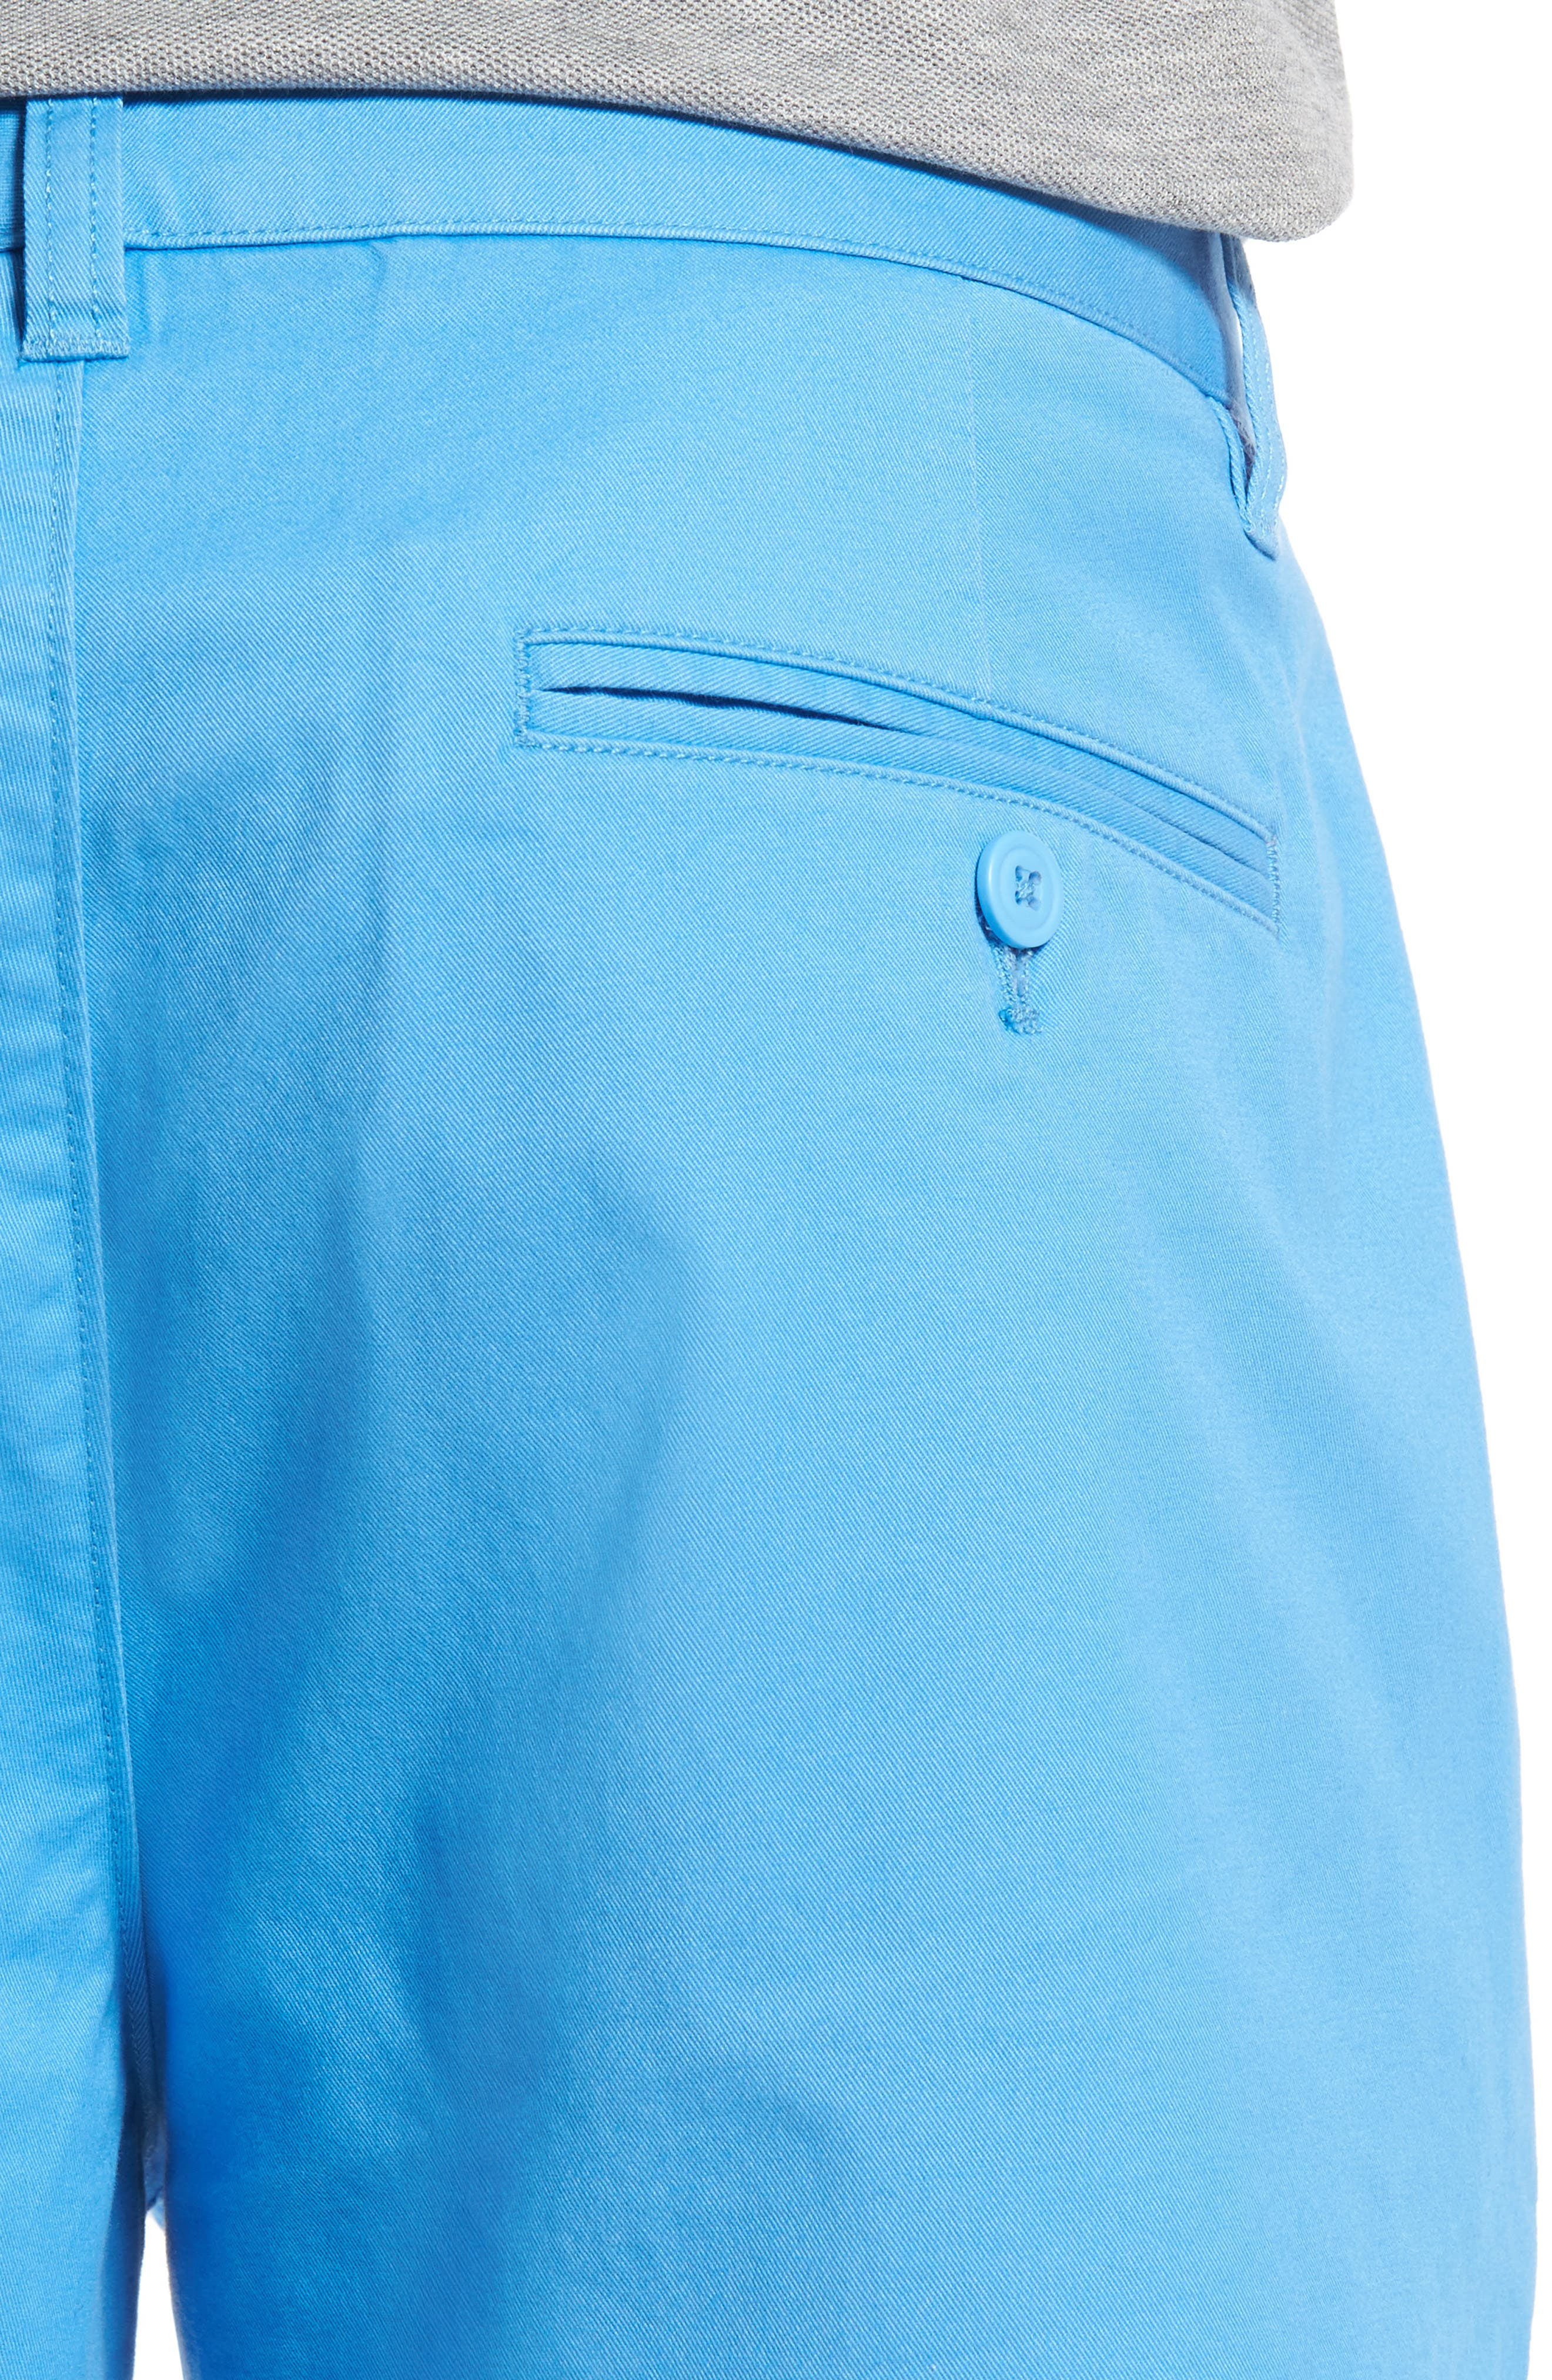 Stretch Chino 7-Inch Shorts,                             Alternate thumbnail 49, color,